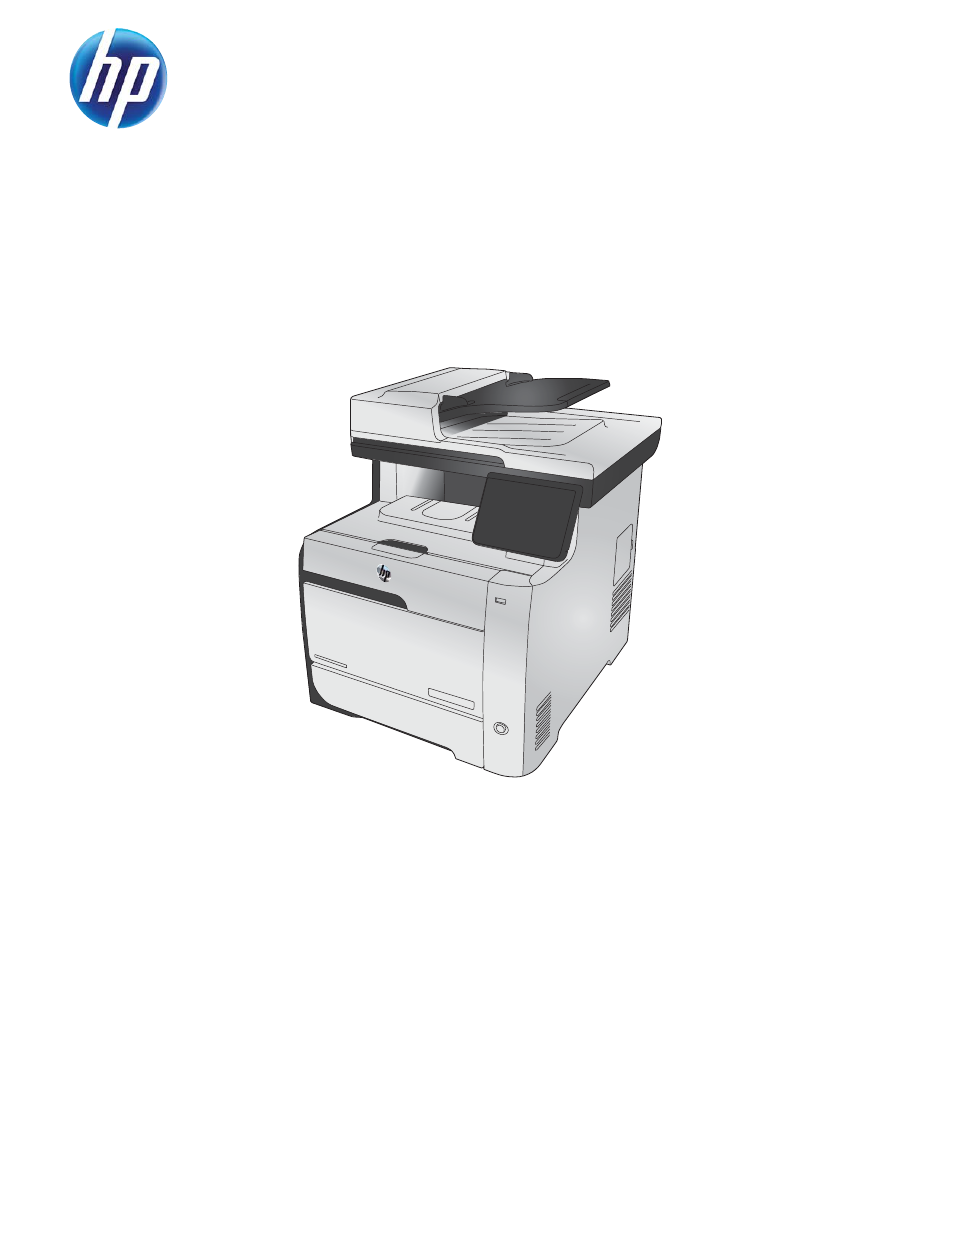 background image. LASERJET PRO 300 COLOR MFP. LASERJET PRO 400 COLOR MFP. Service  Manual